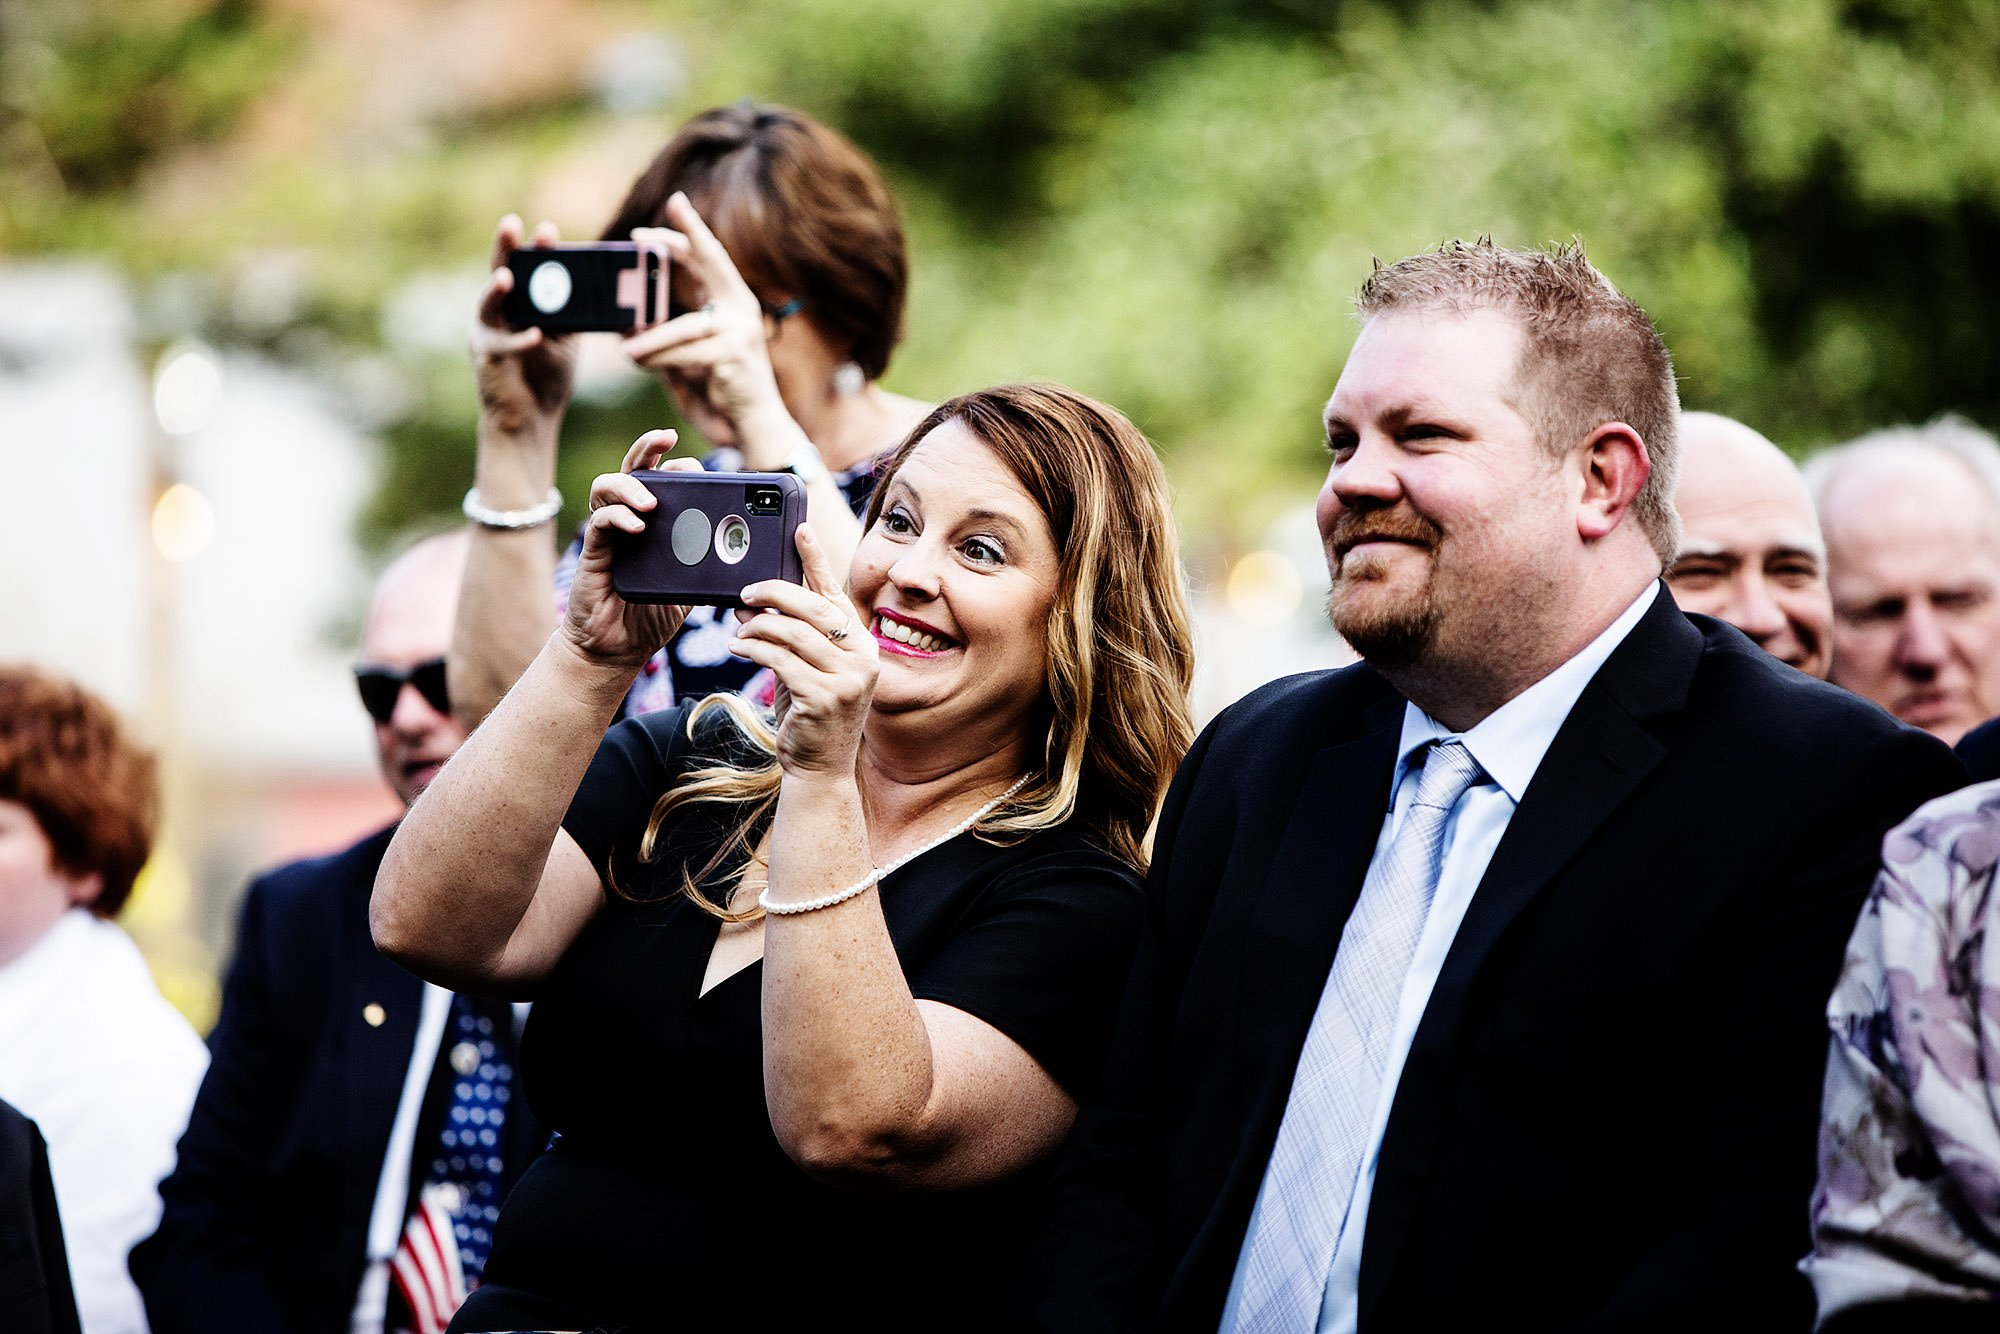 Guests use their cameras during the wedding ceremony at Mad River Barn.